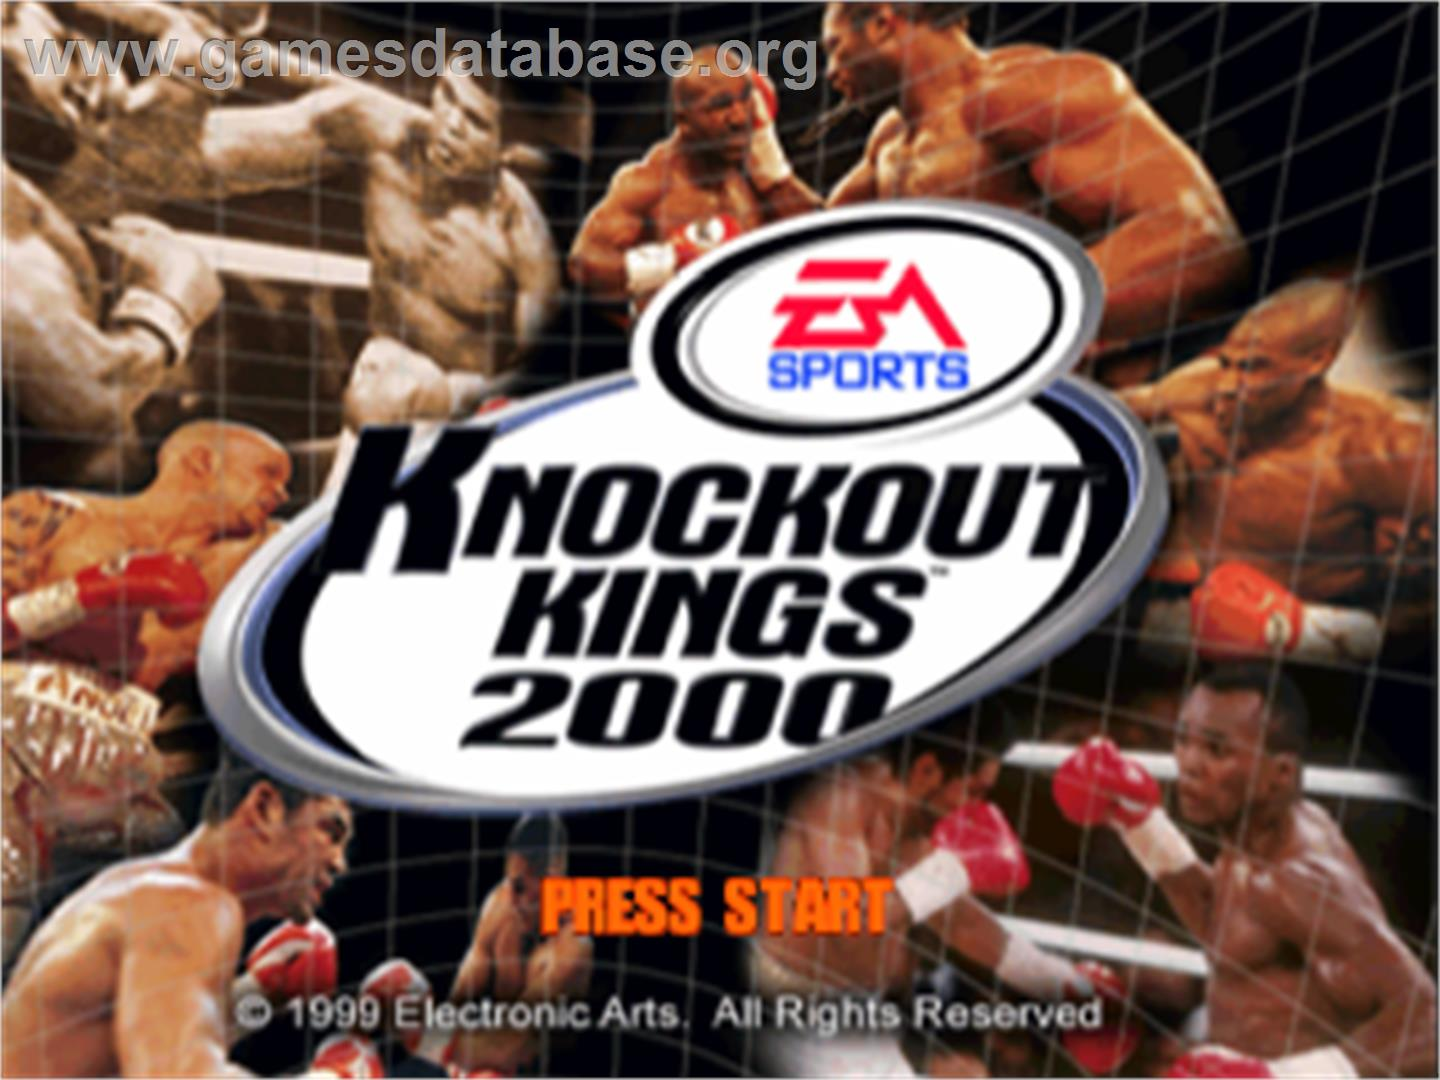 Knockout Kings 2000 - Sony Playstation - Artwork - Title Screen